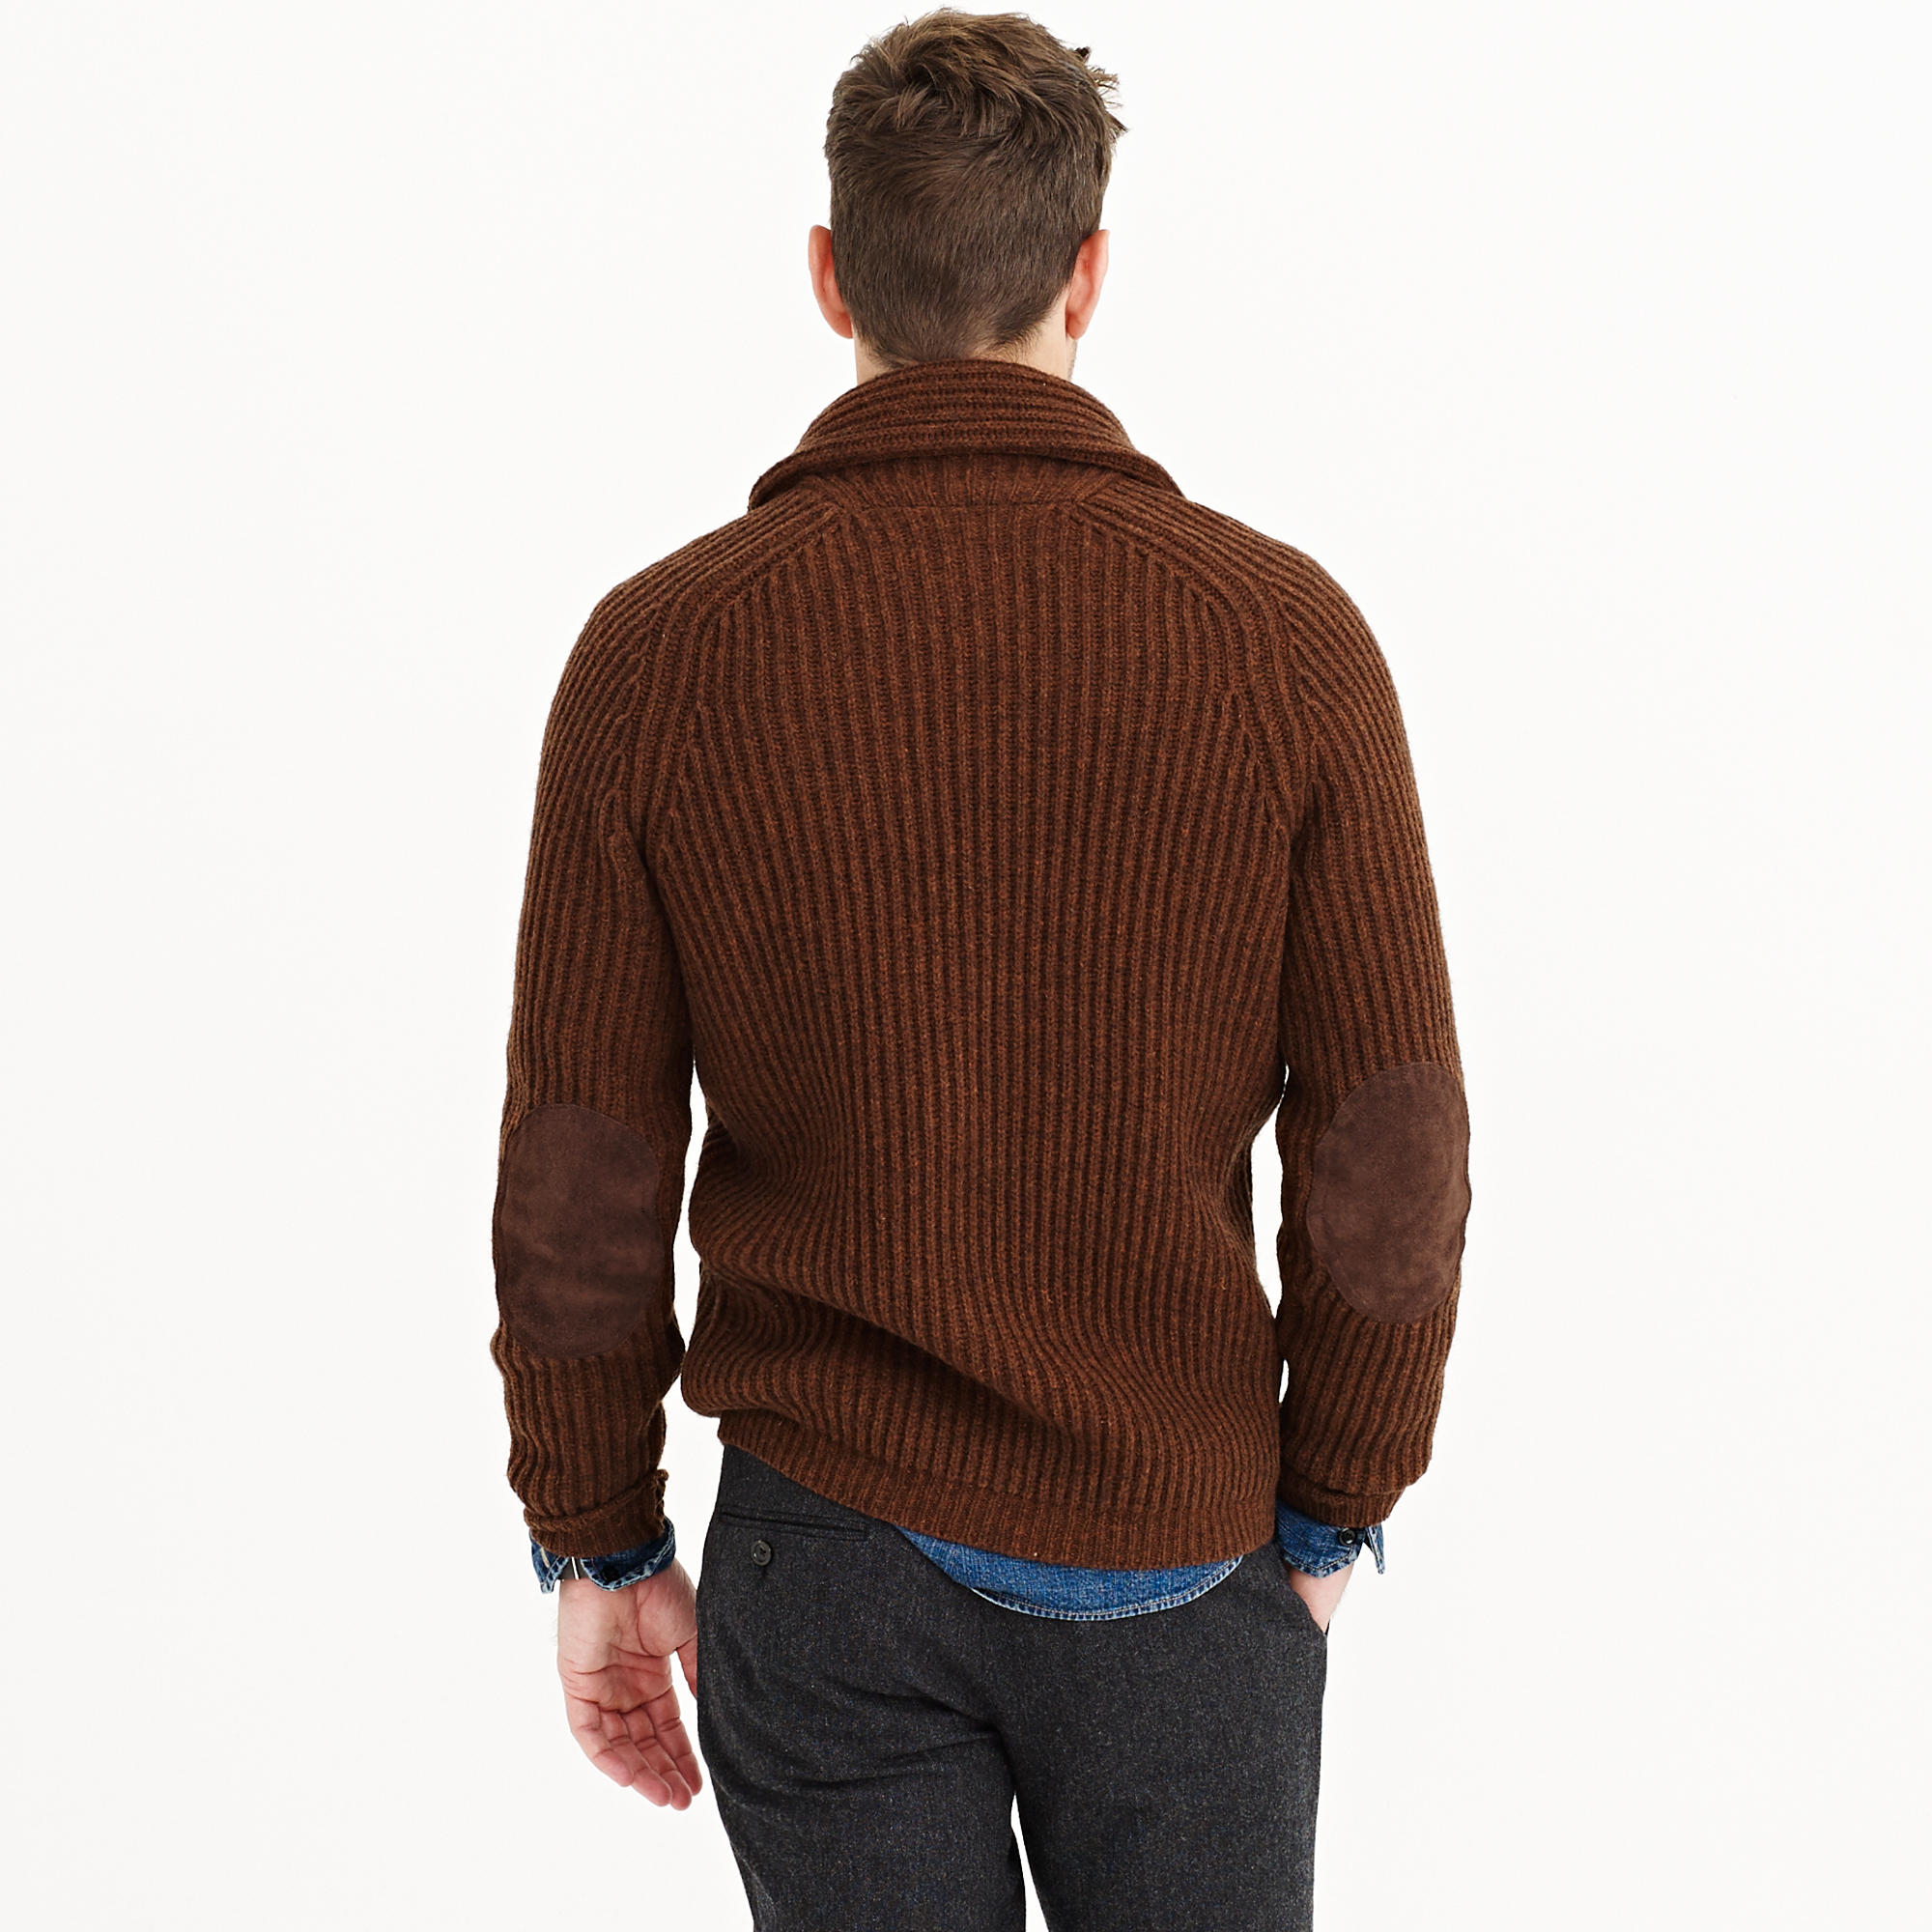 59407c221f3 Lyst - J.Crew Lambswool Ribbed Cardigan Sweater in Brown for Men